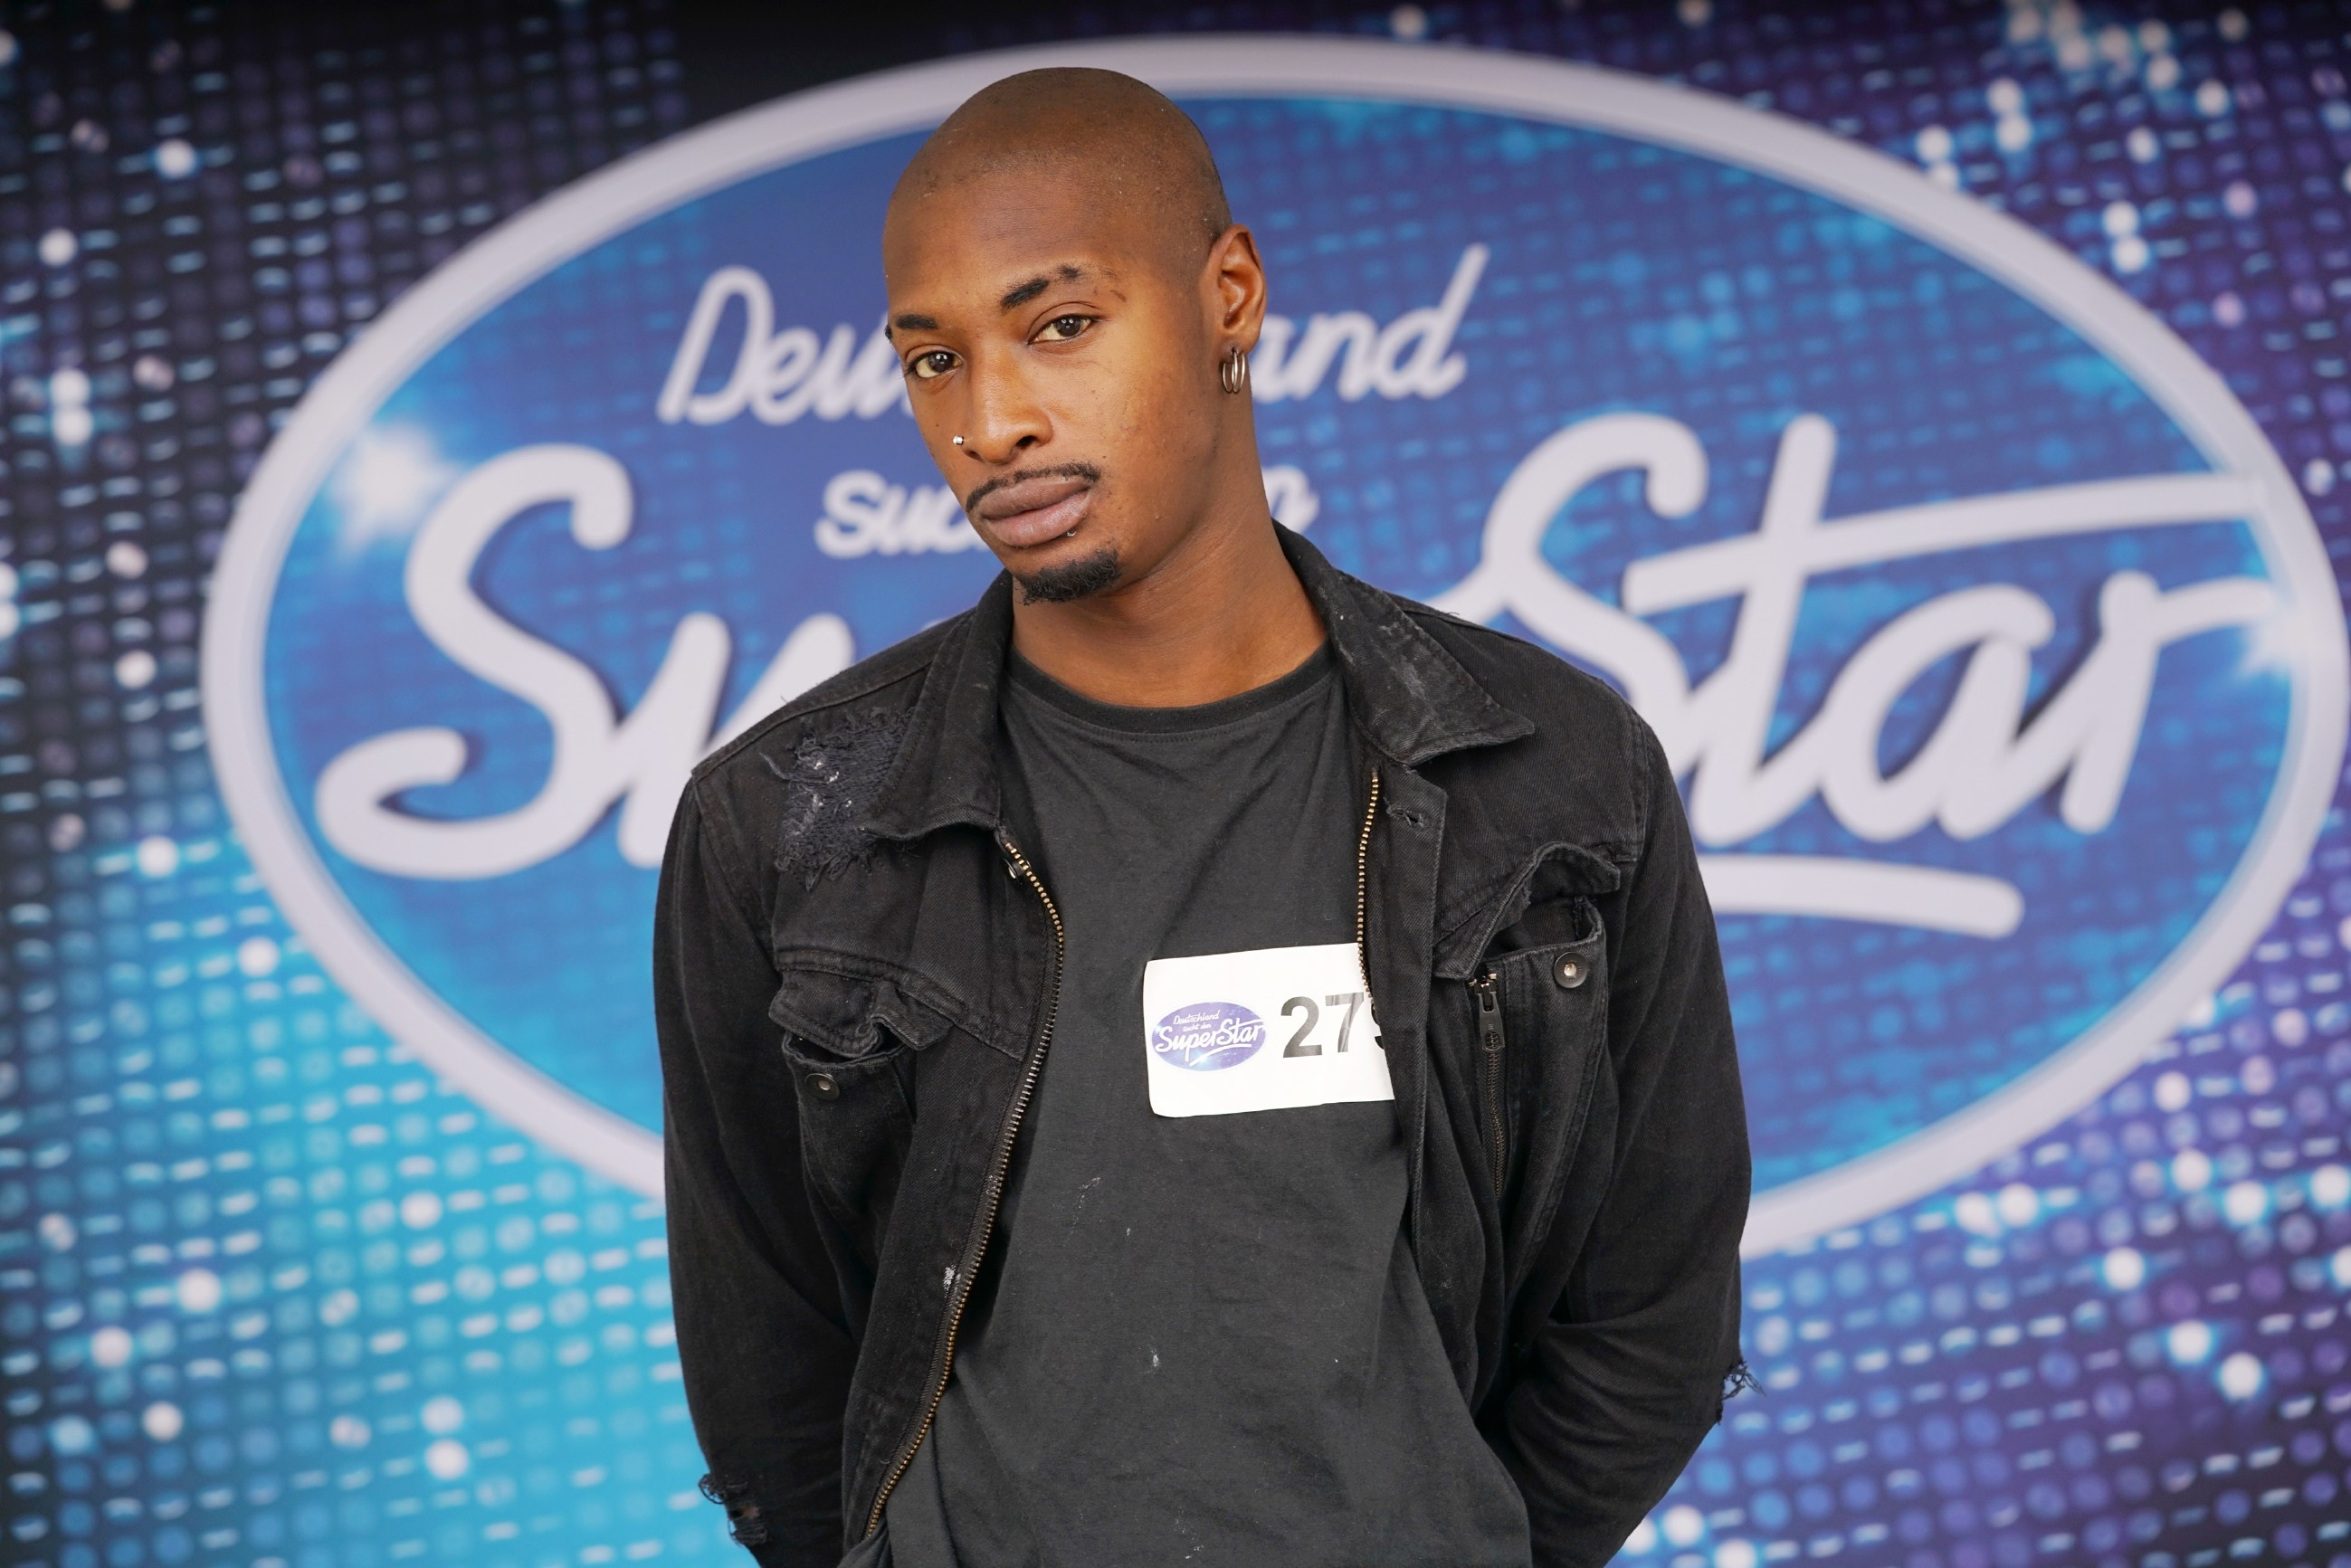 DSDS 2018 TOP 24 - Diego